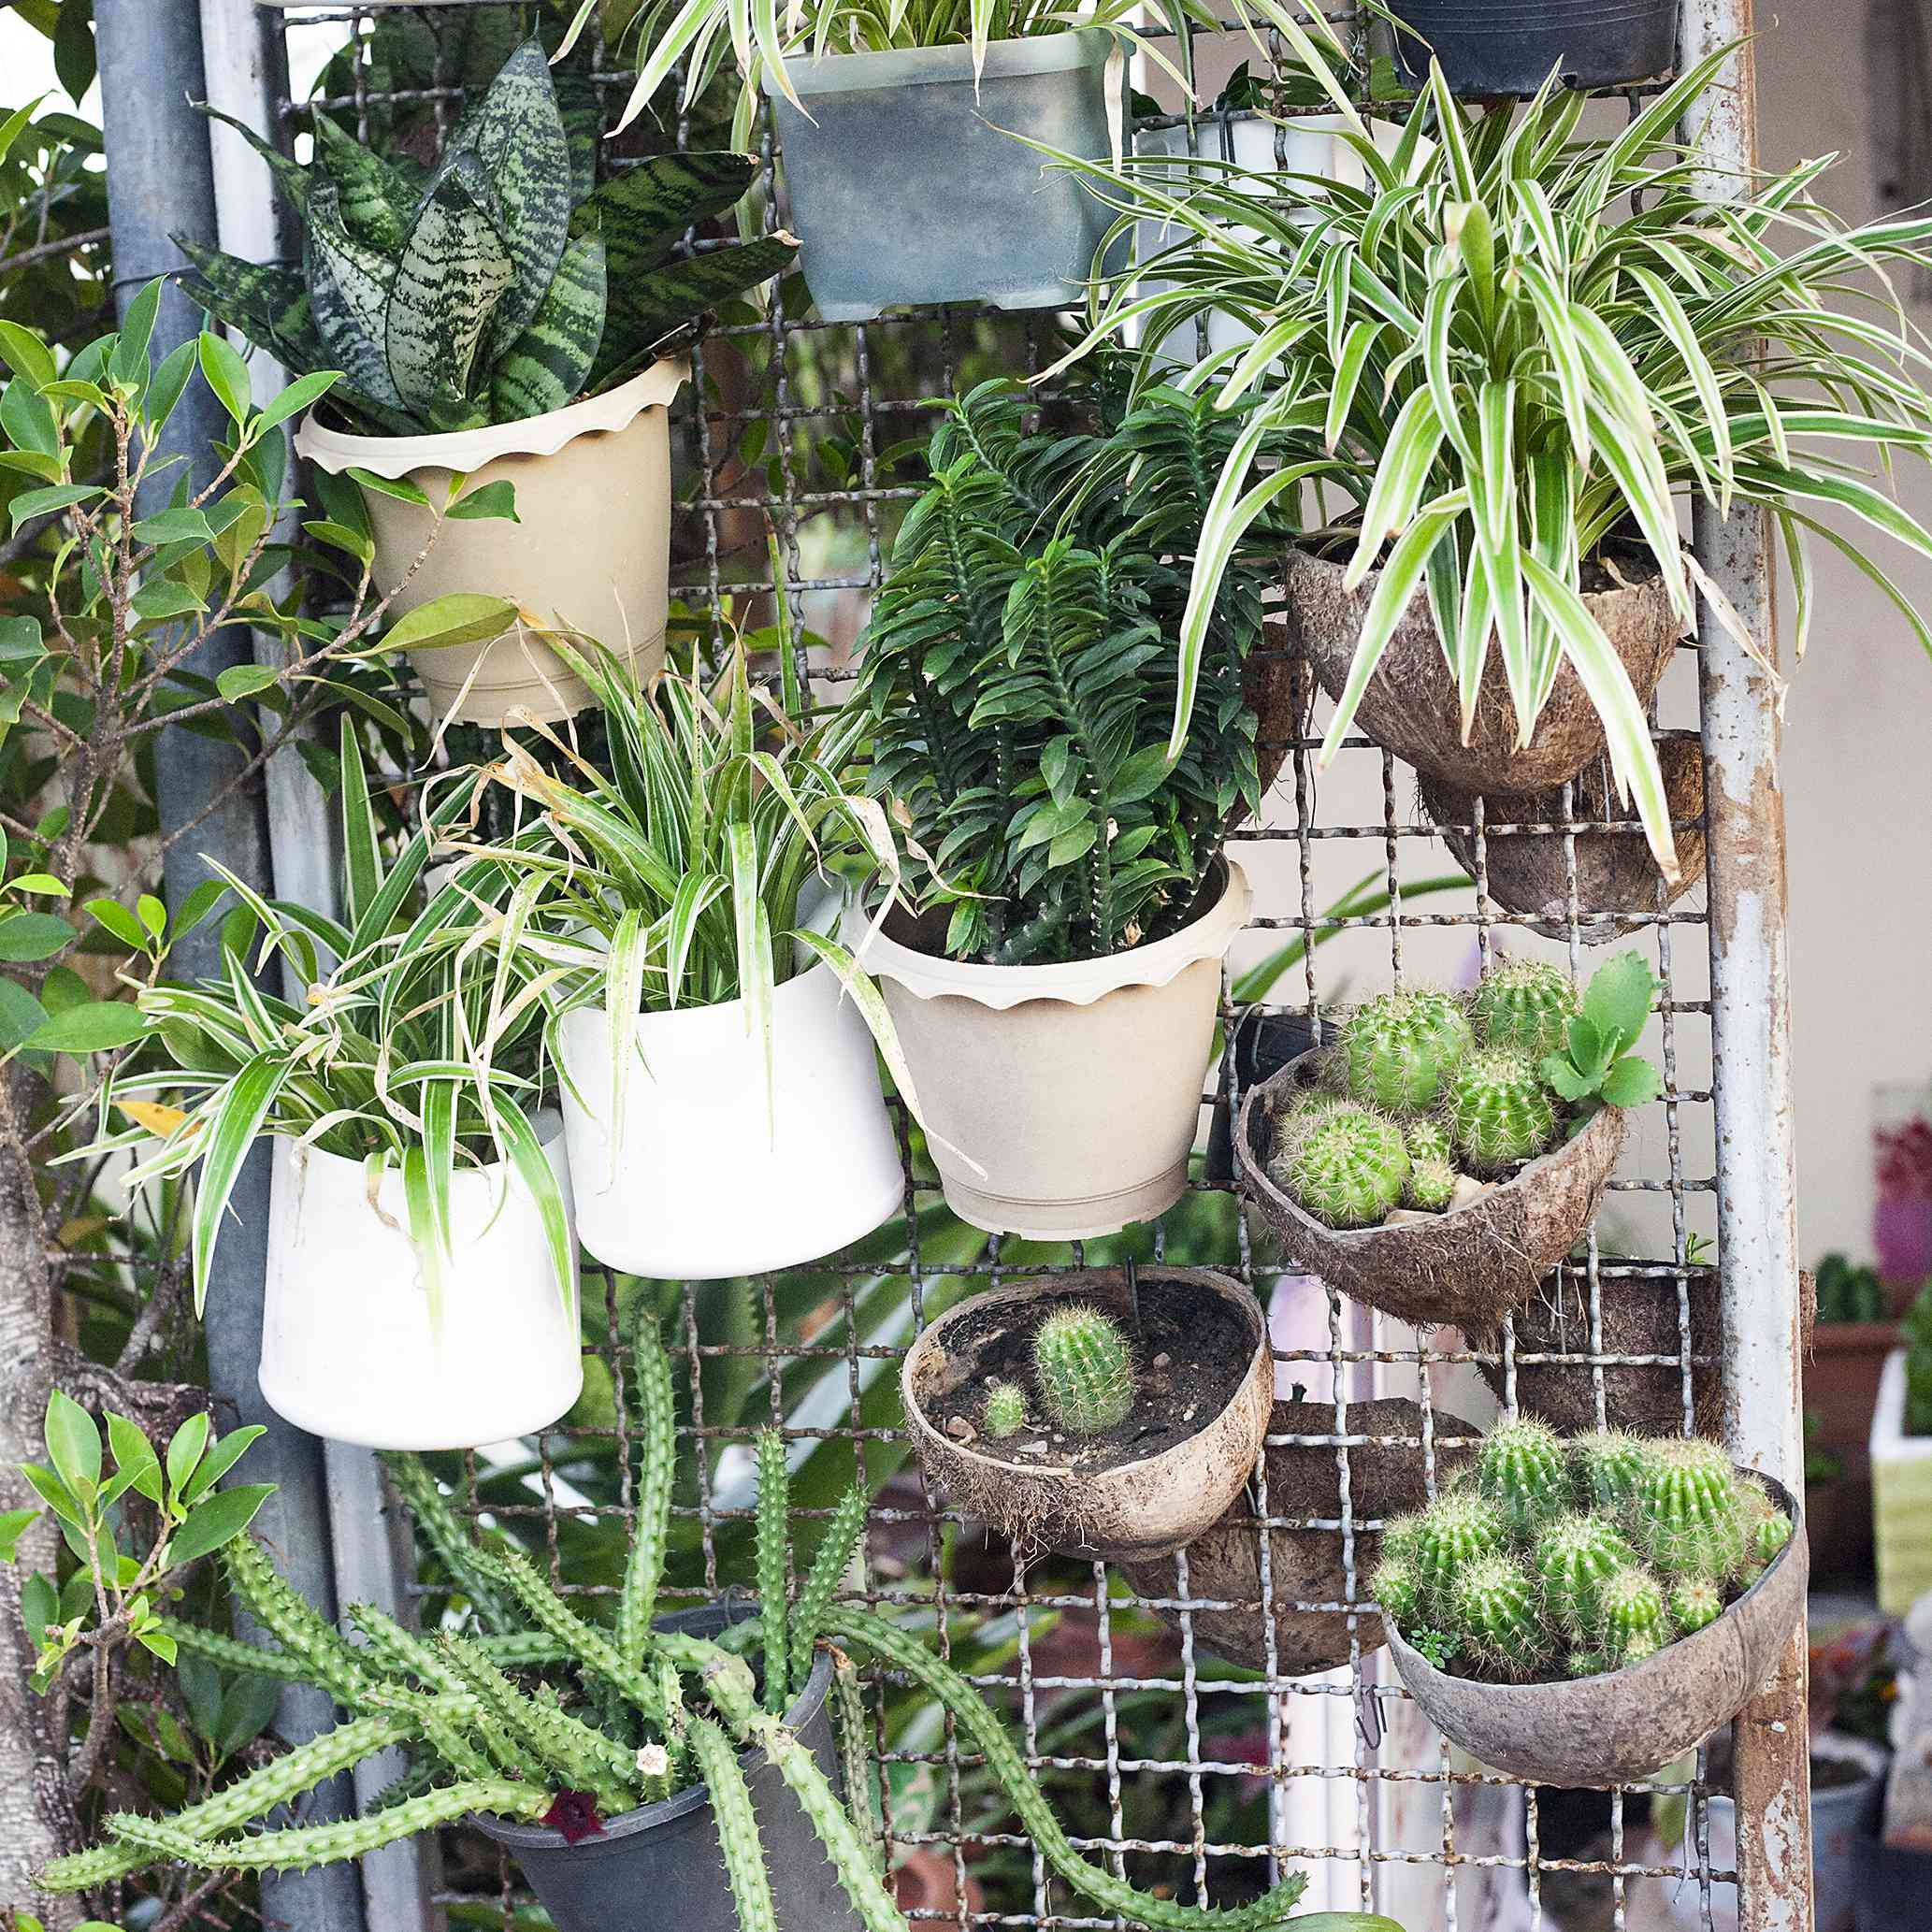 A metal screen with various hanging potted plants.